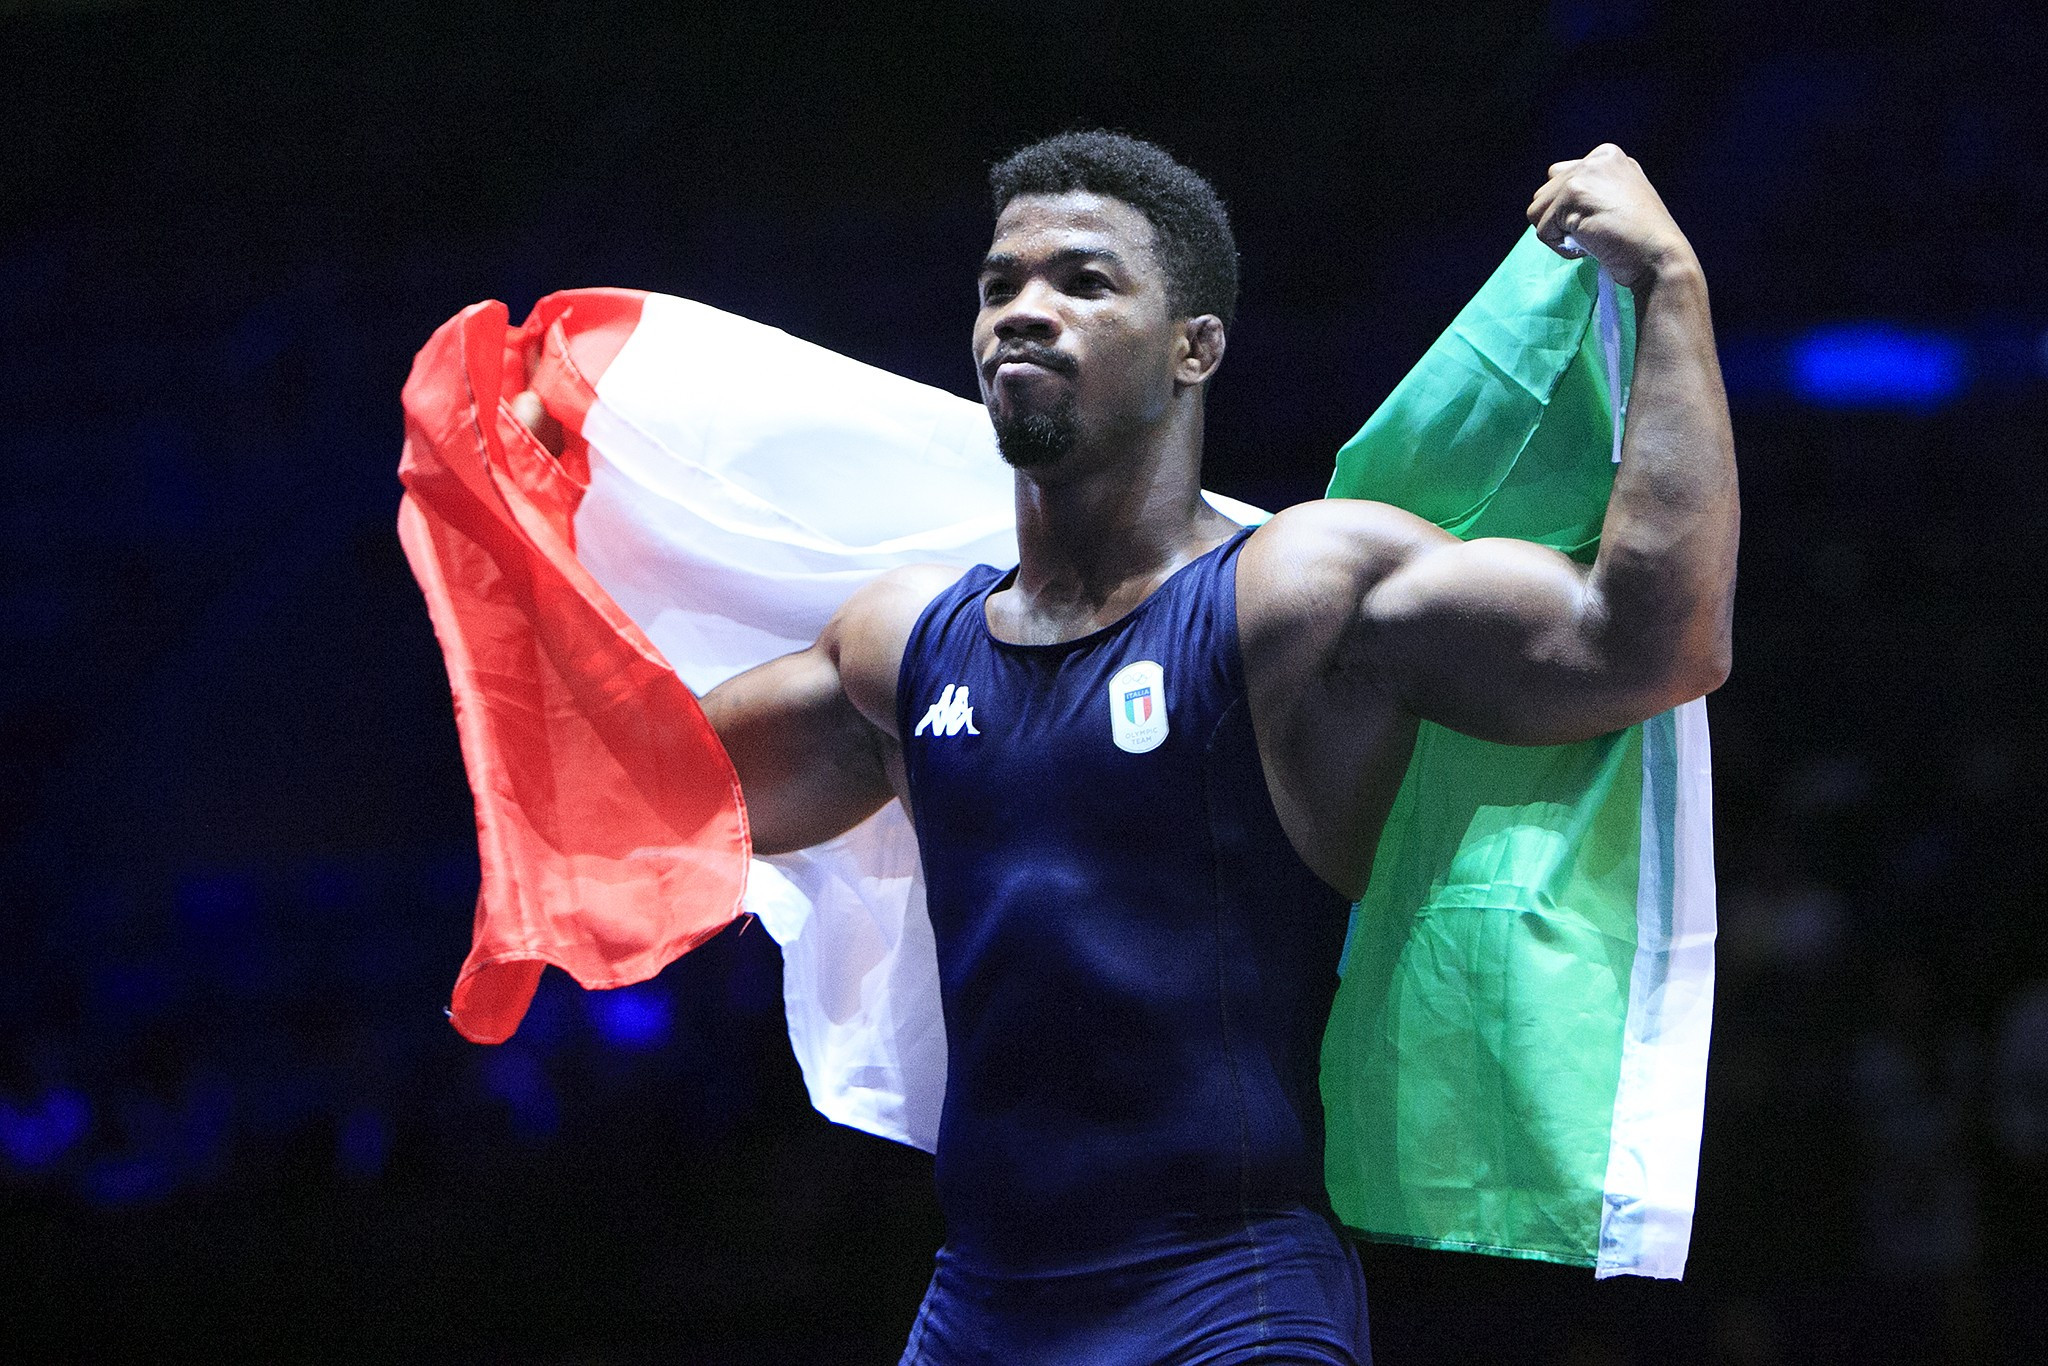 Frank Chamizo won the most eagerly anticipated bout of the day as he beat Magomedrasul Gazimagomedov to win the men's freestyle 74kg at the European Wrestling Championships ©Getty Images